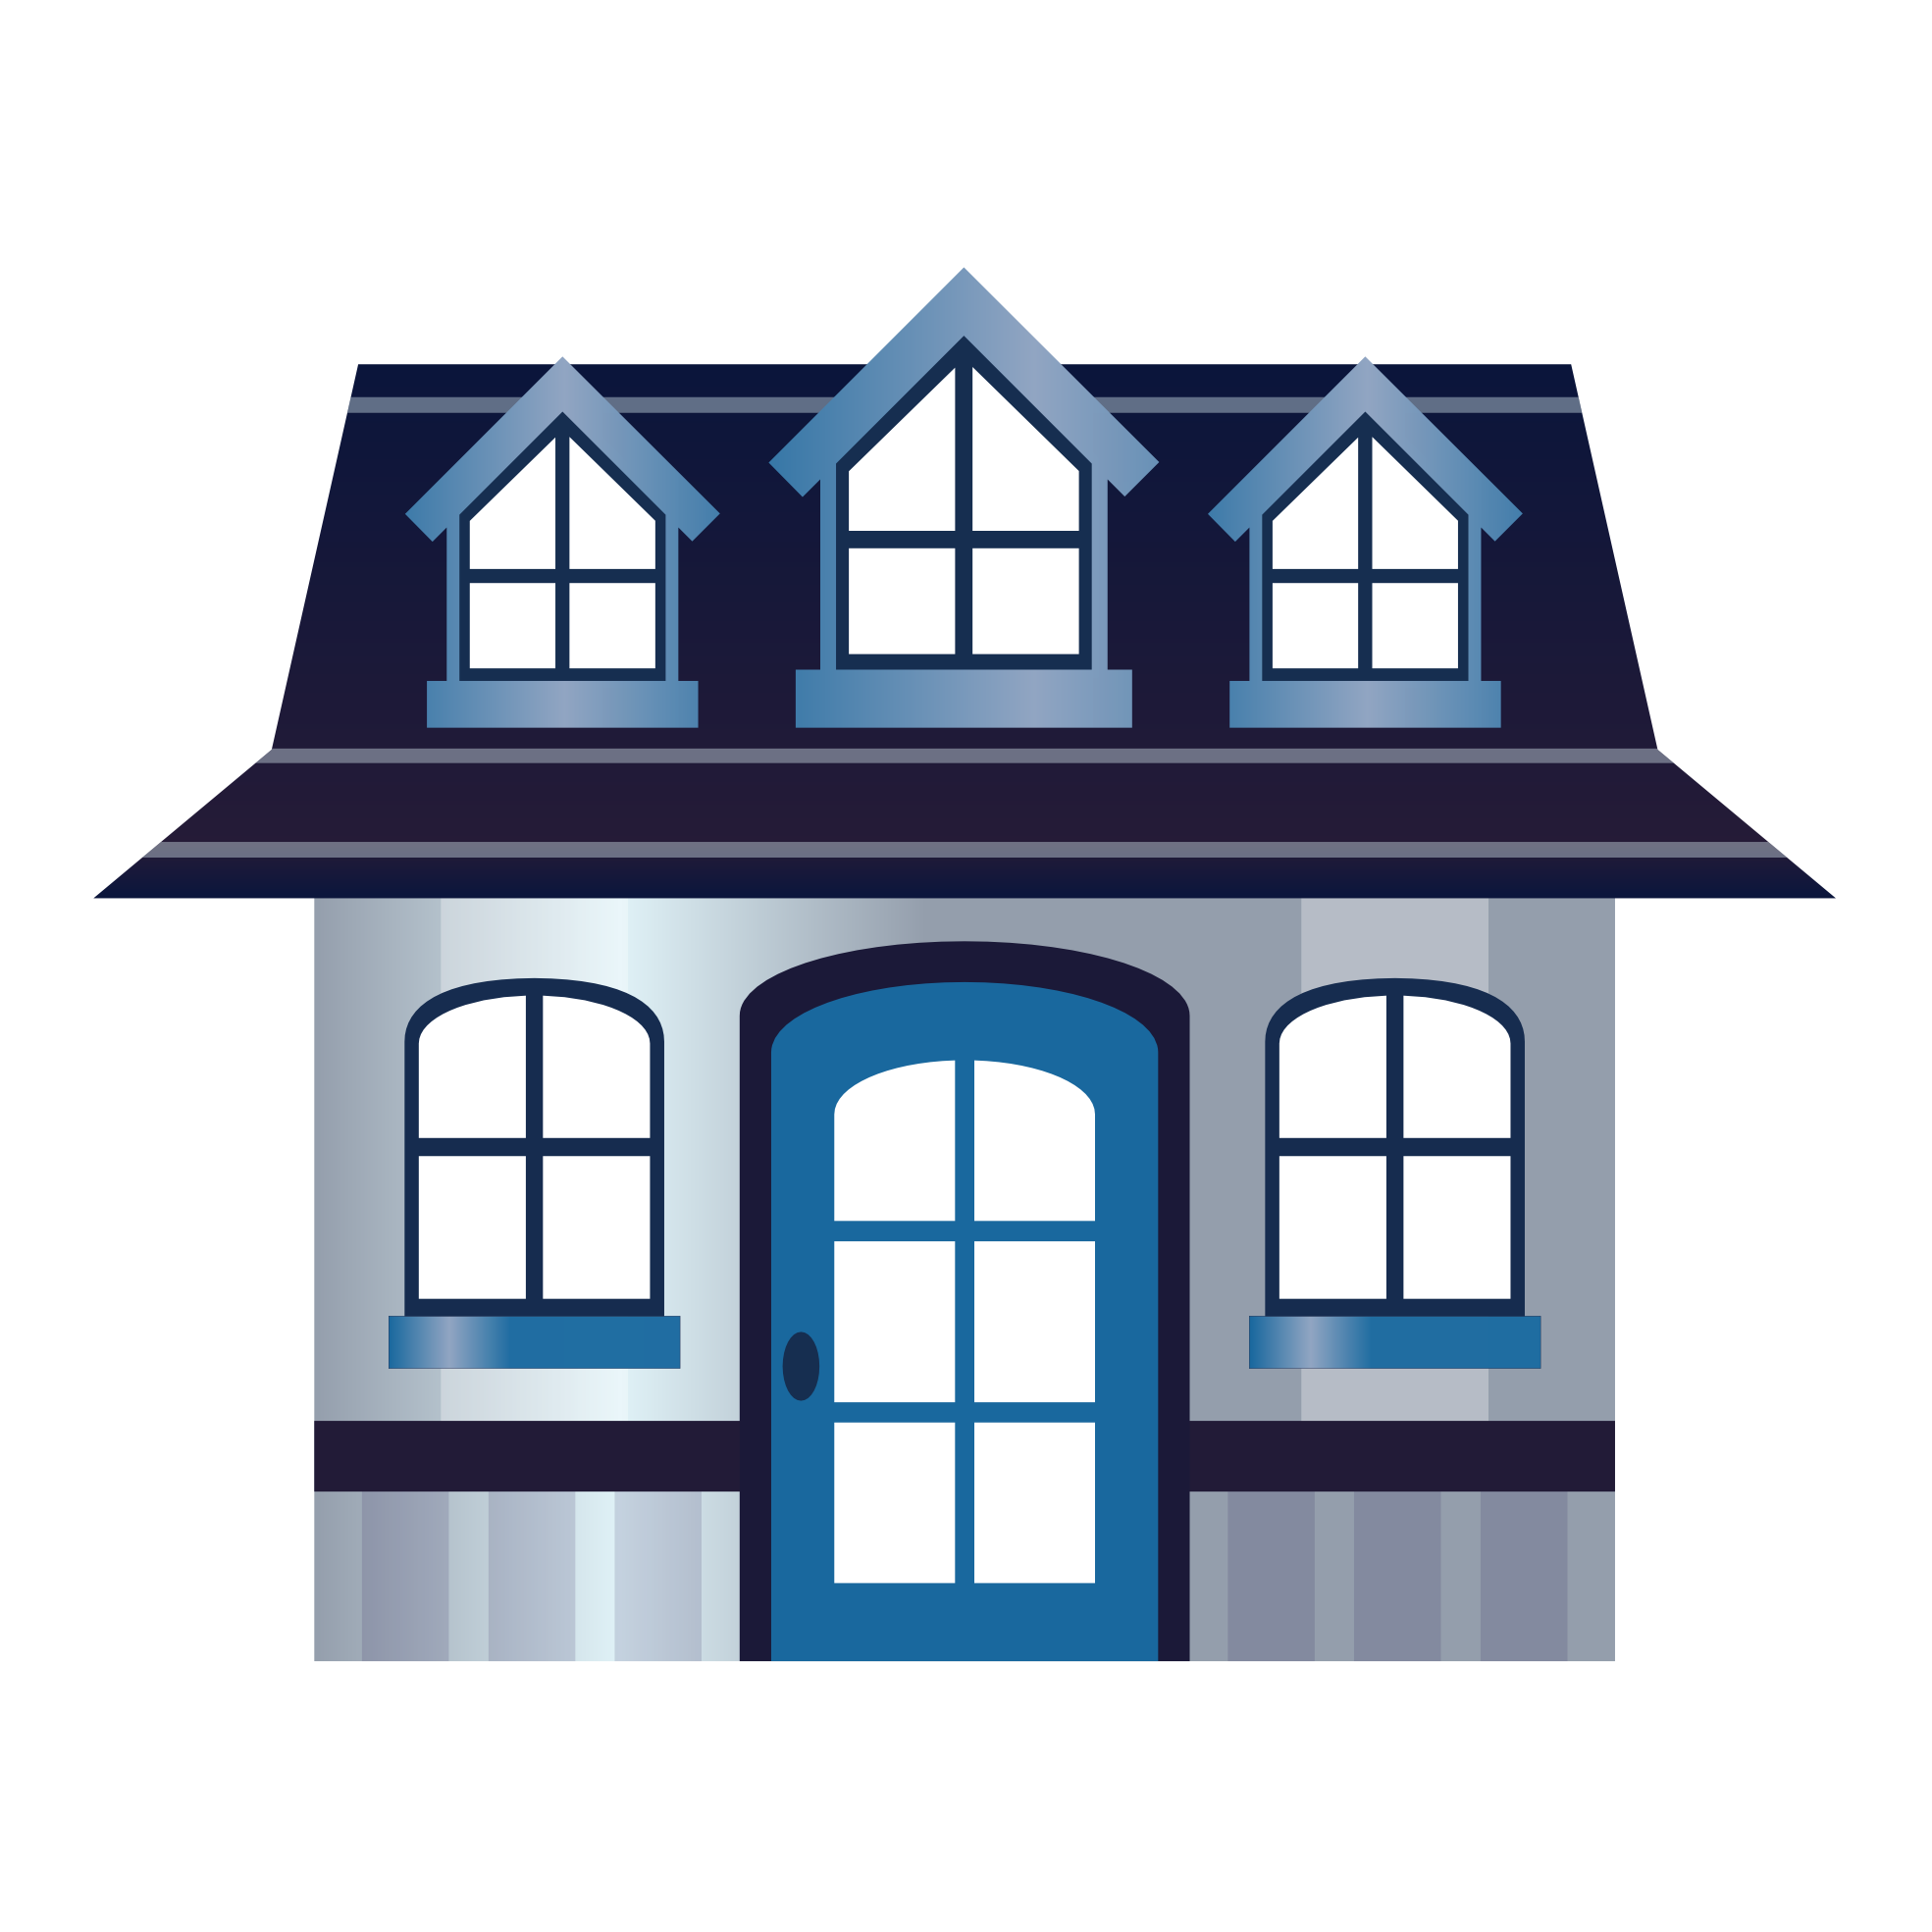 House Vector Png